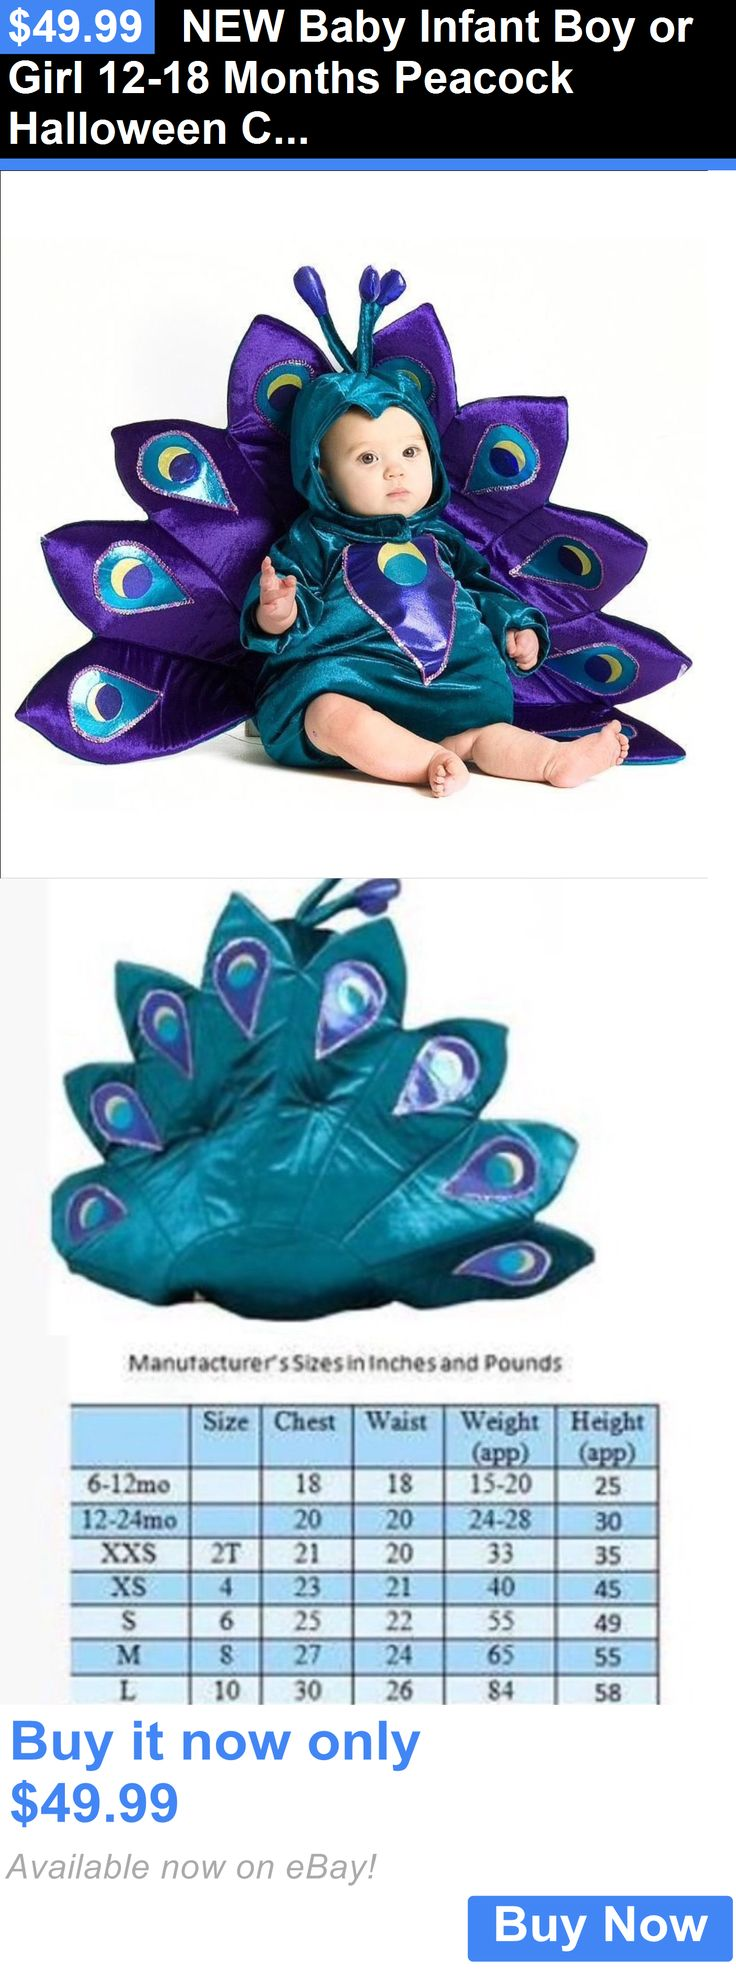 Halloween Costumes Kids: New Baby Infant Boy Or Girl 12-18 Months Peacock Halloween Costume BUY IT NOW ONLY: $49.99